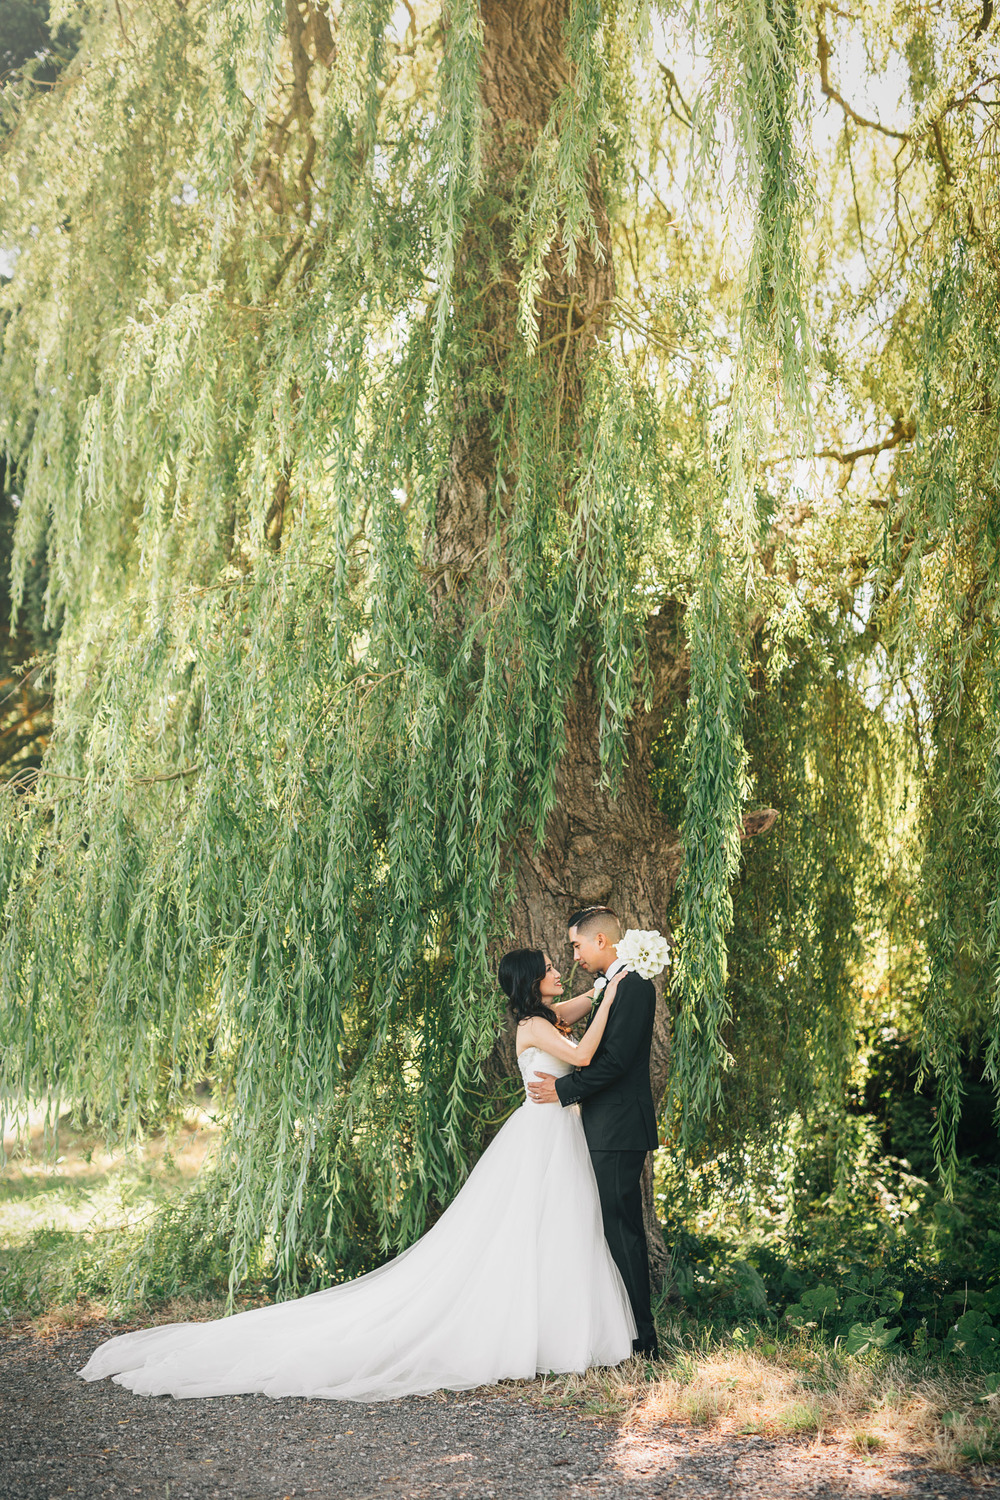 vsco wedding photographer terra nova richmond bc